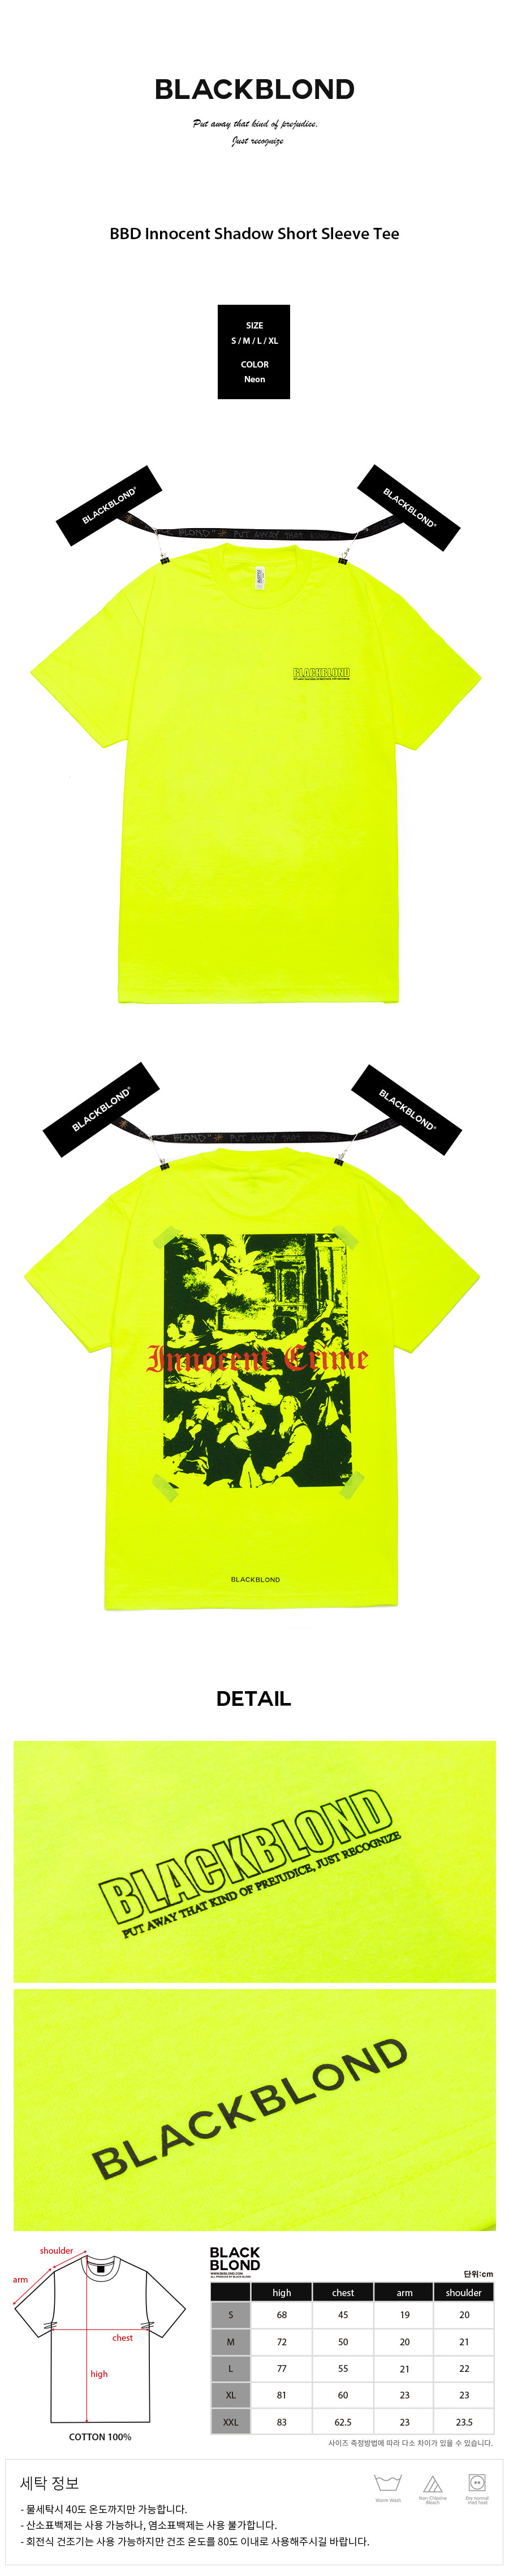 블랙블론드 BLACKBLOND - BBD Innocent Shadow Short Sleeve Tee (Neon)